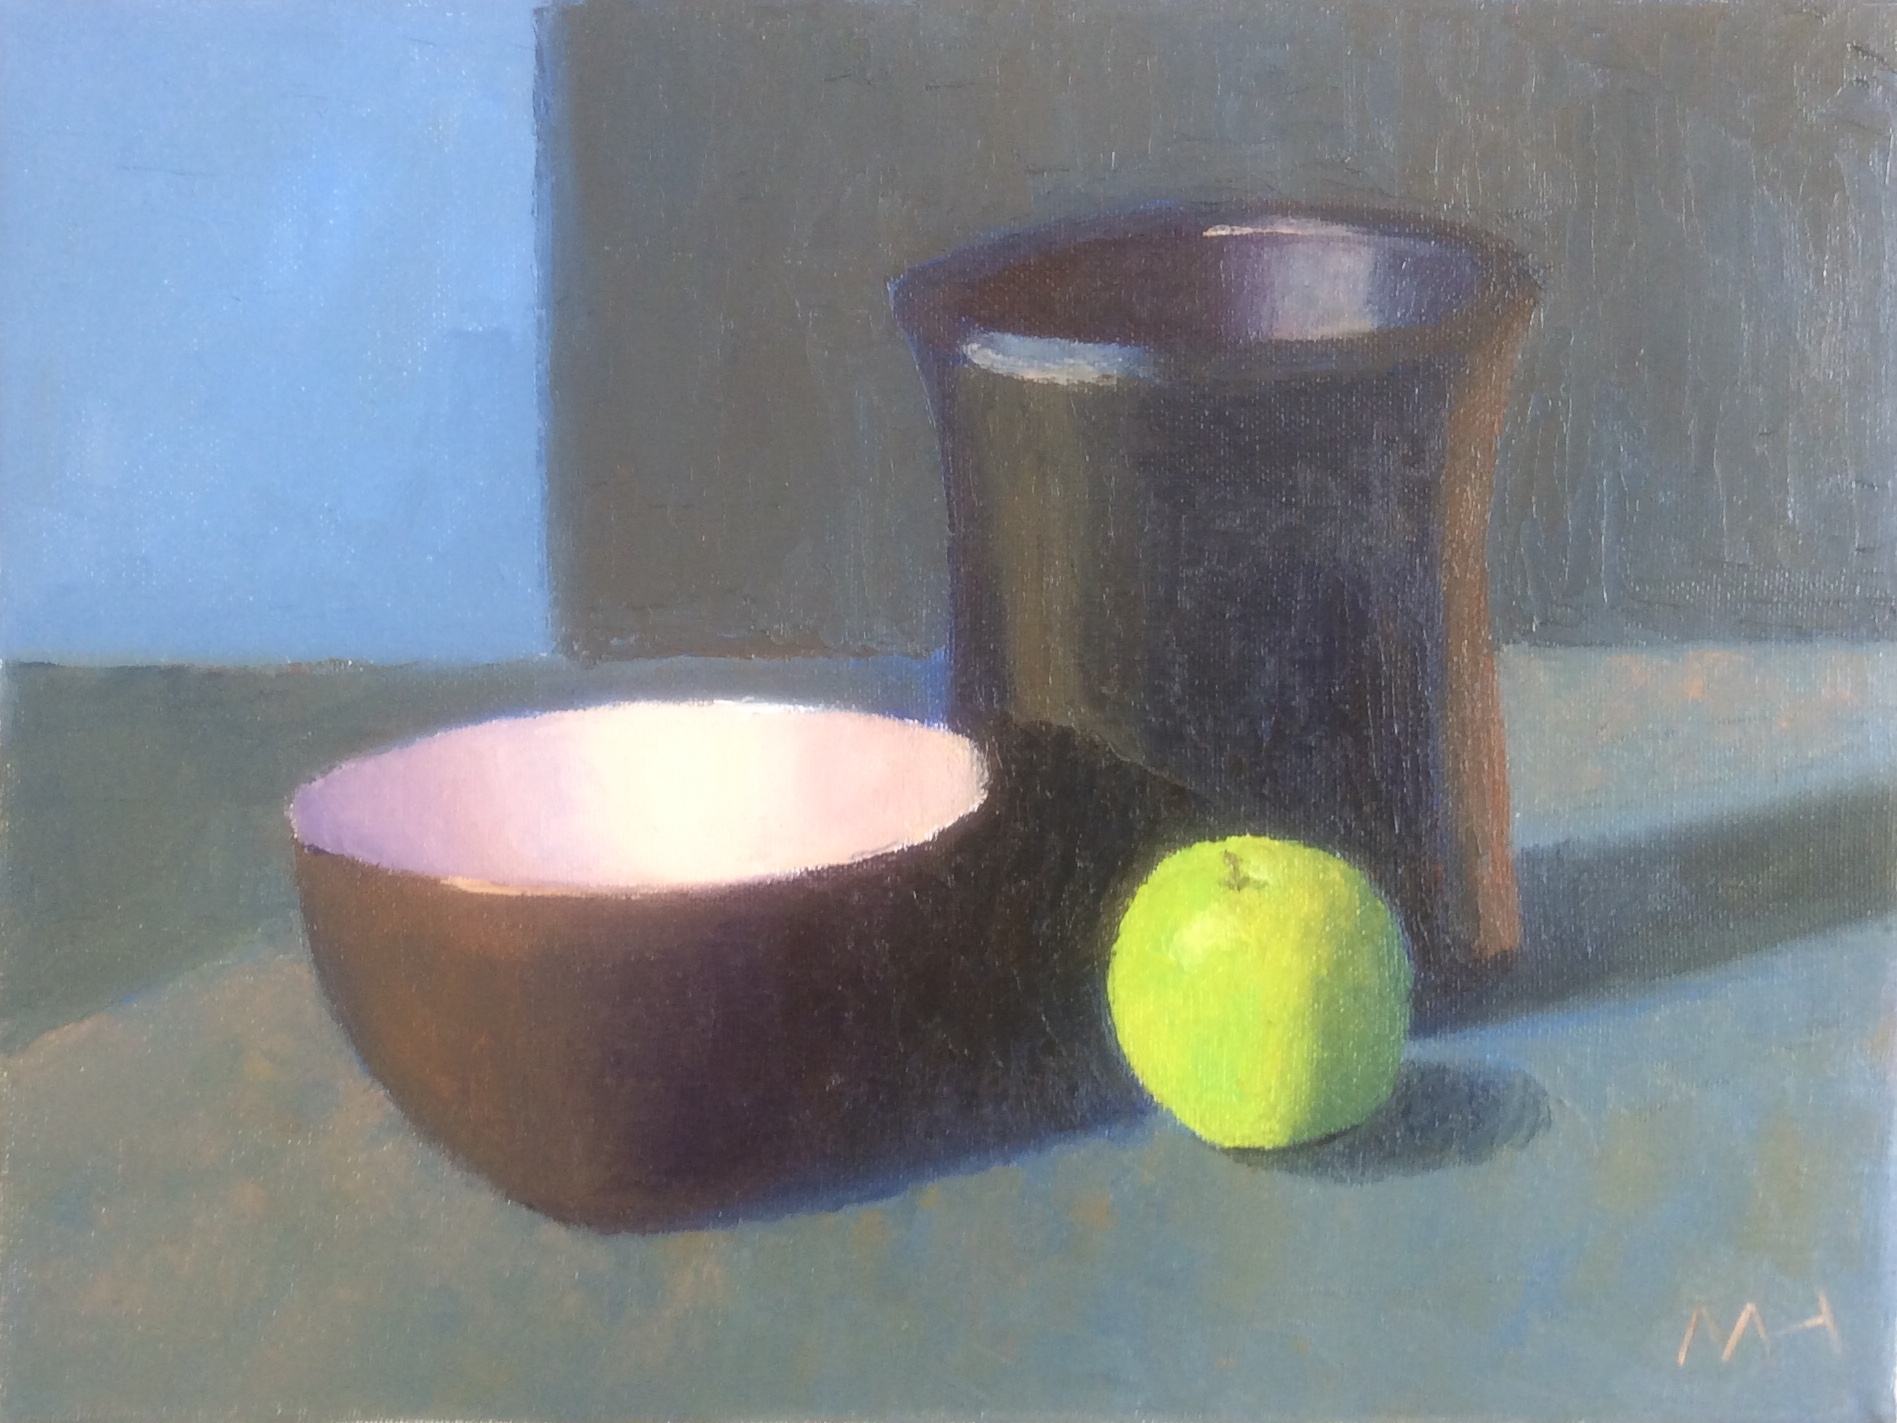 Bowlpot and green apple